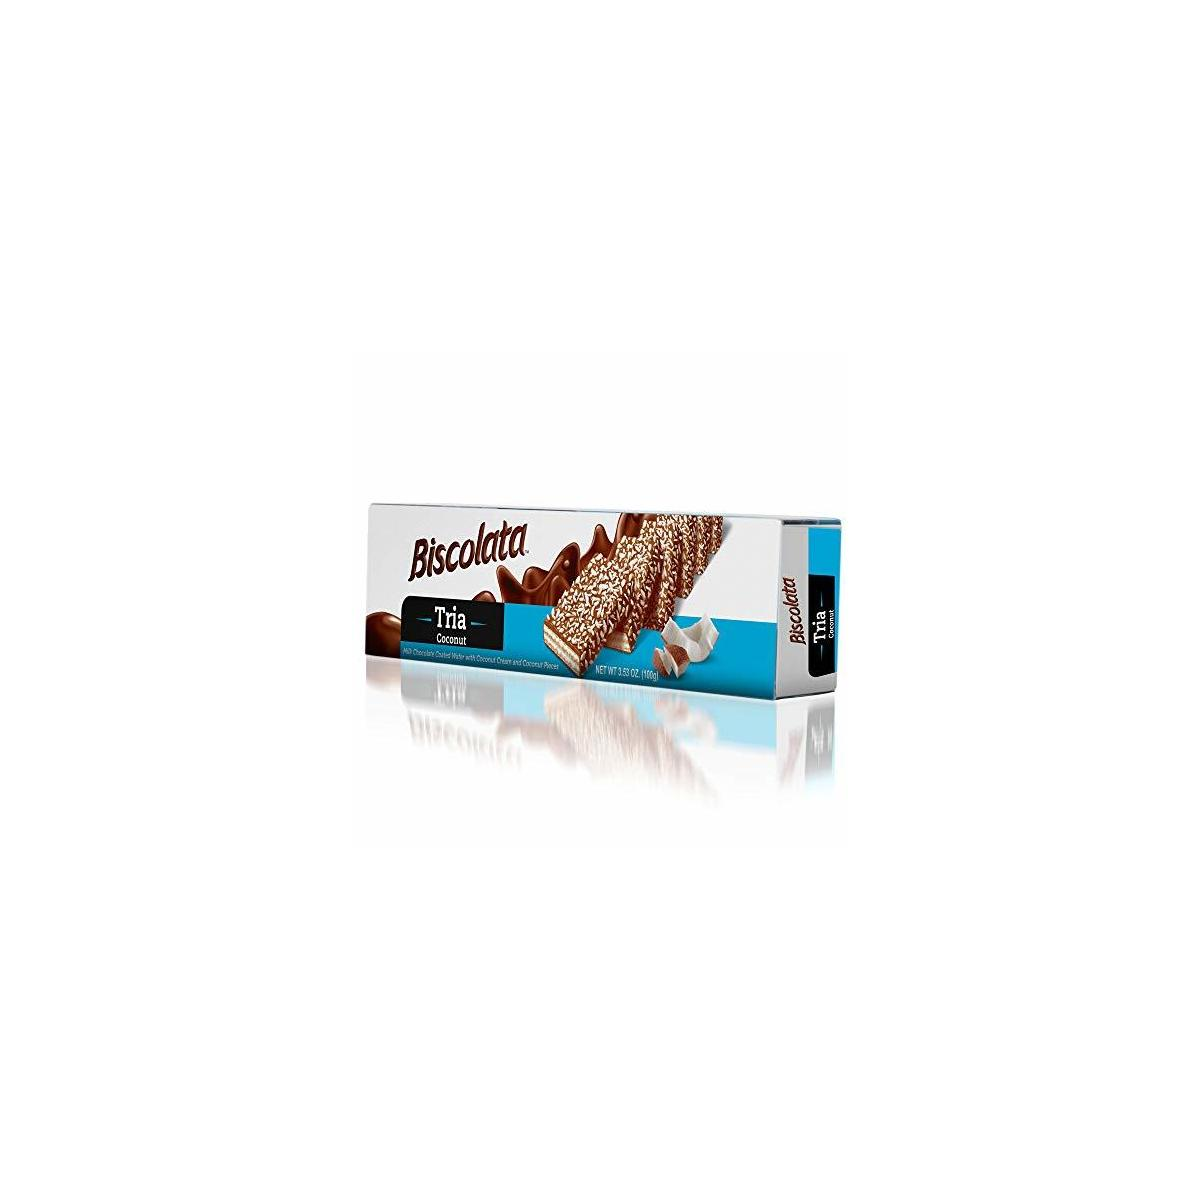 Biscolata Tria Milk Chocolate Wafers Snacks - (3 Pack - 36 Pieces) (Coconut)